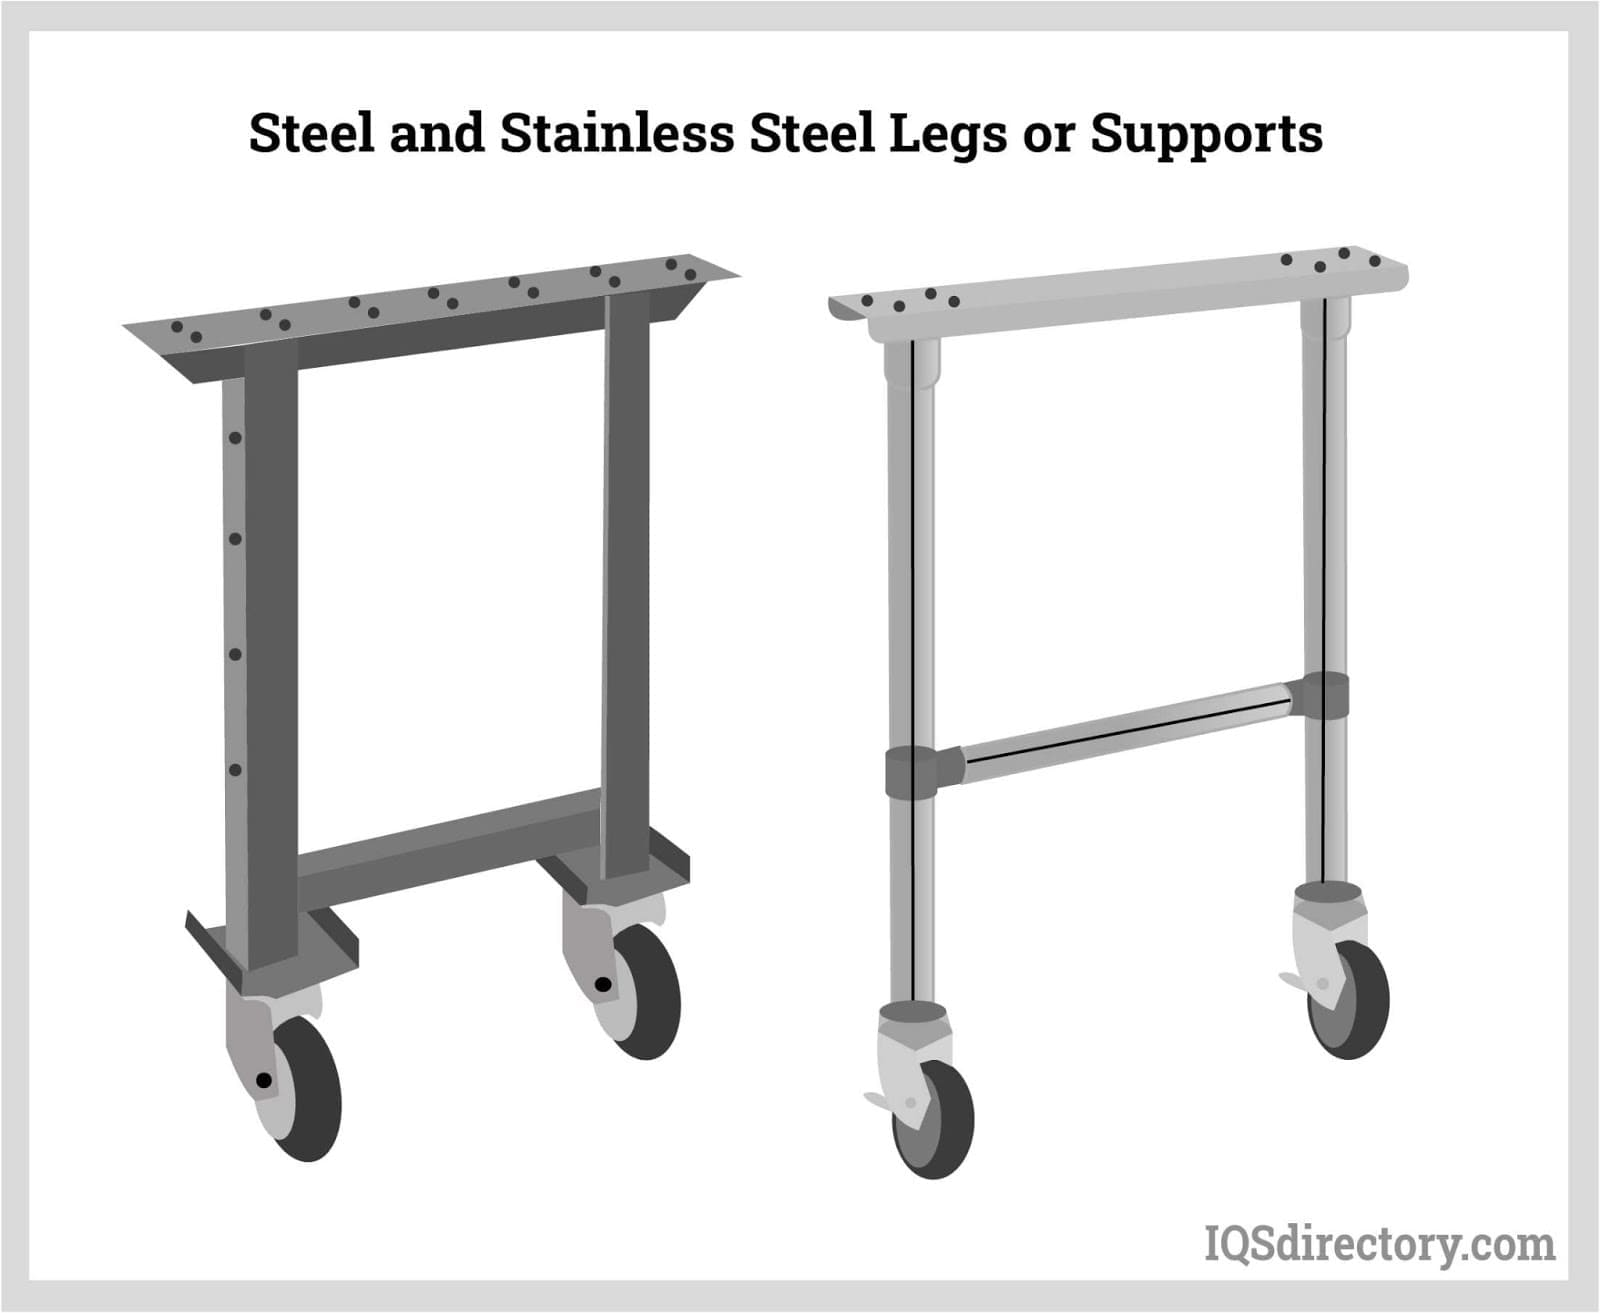 Steel and Stainless Steel Legs or Supports